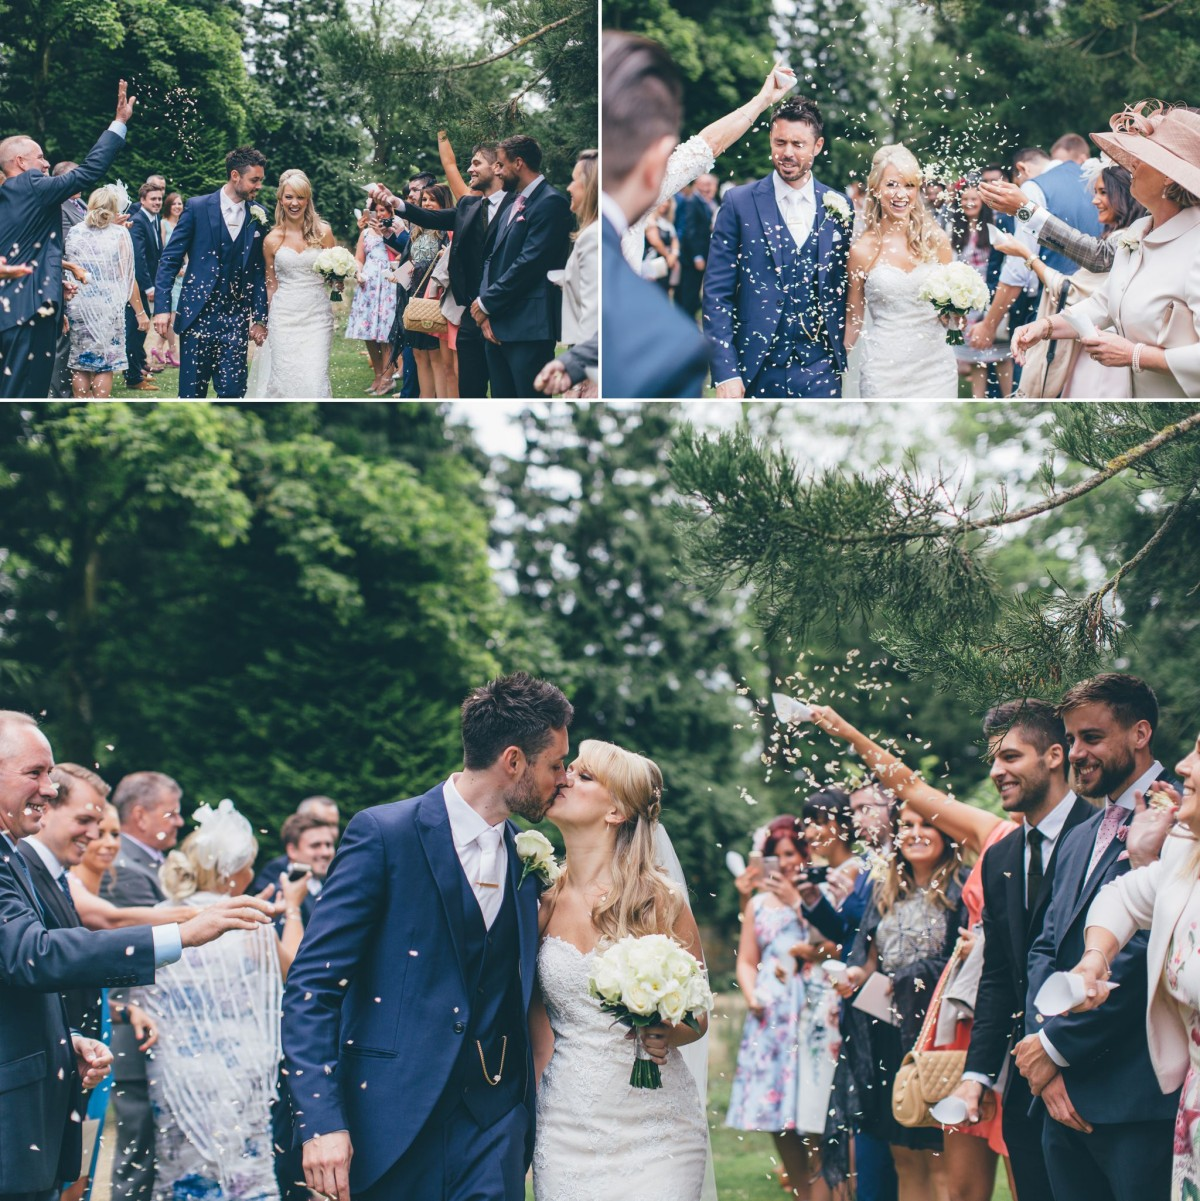 welsh_wedding_photographer_rachel_lambert_photography_lower_slaughter_manor_house_cotswolds_harriet_dean_ 28